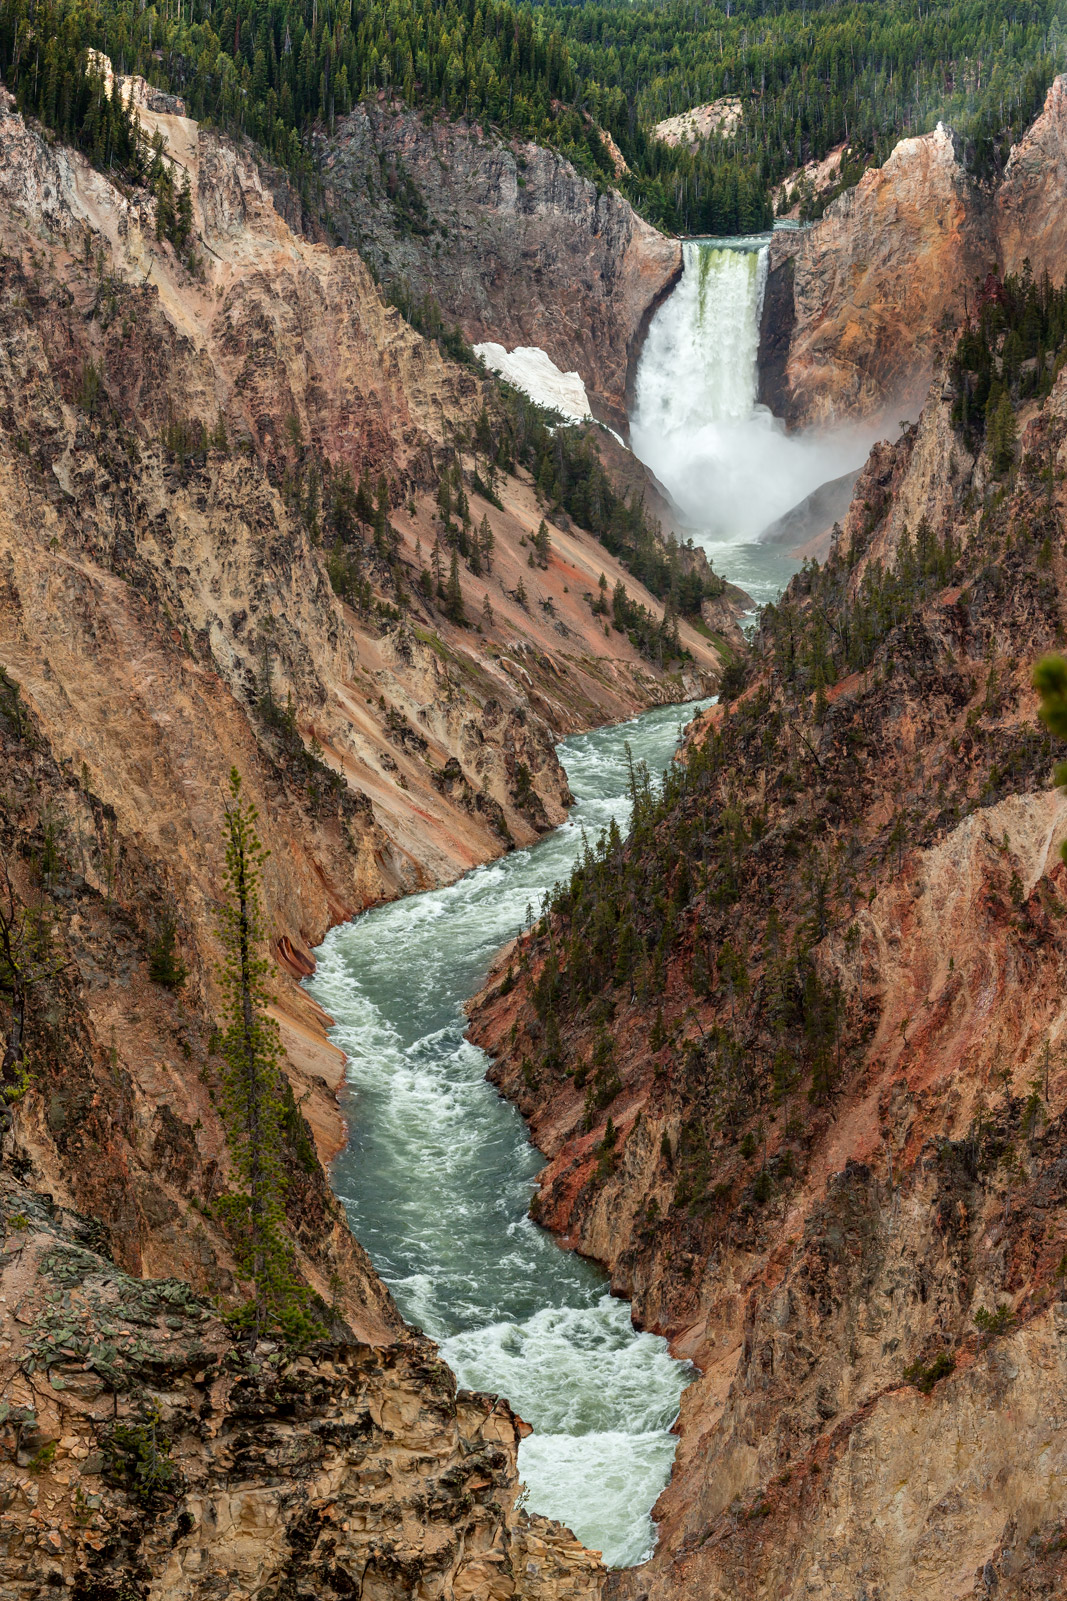 A Limited Edition, Fine Art photograph of Yellowstone Falls at the Grand Canyon of the Yellowstone in Yellowstone National Park...